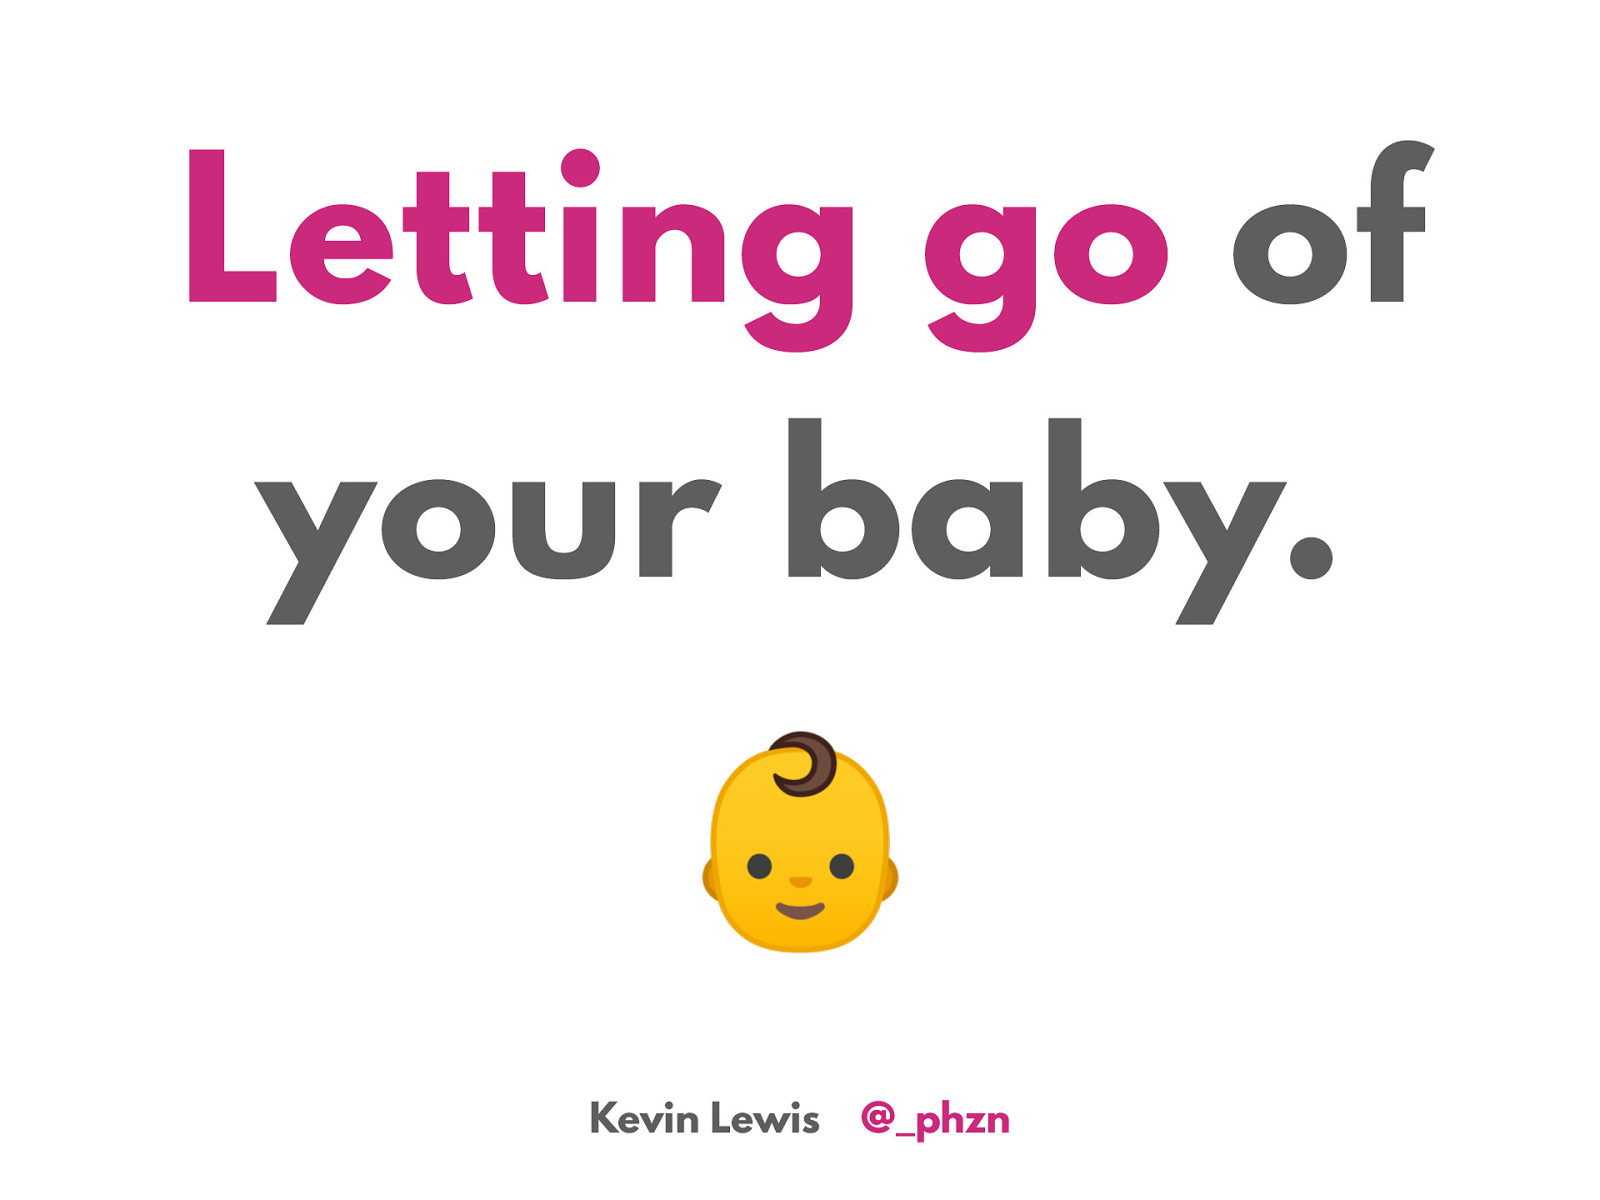 Letting go of your baby